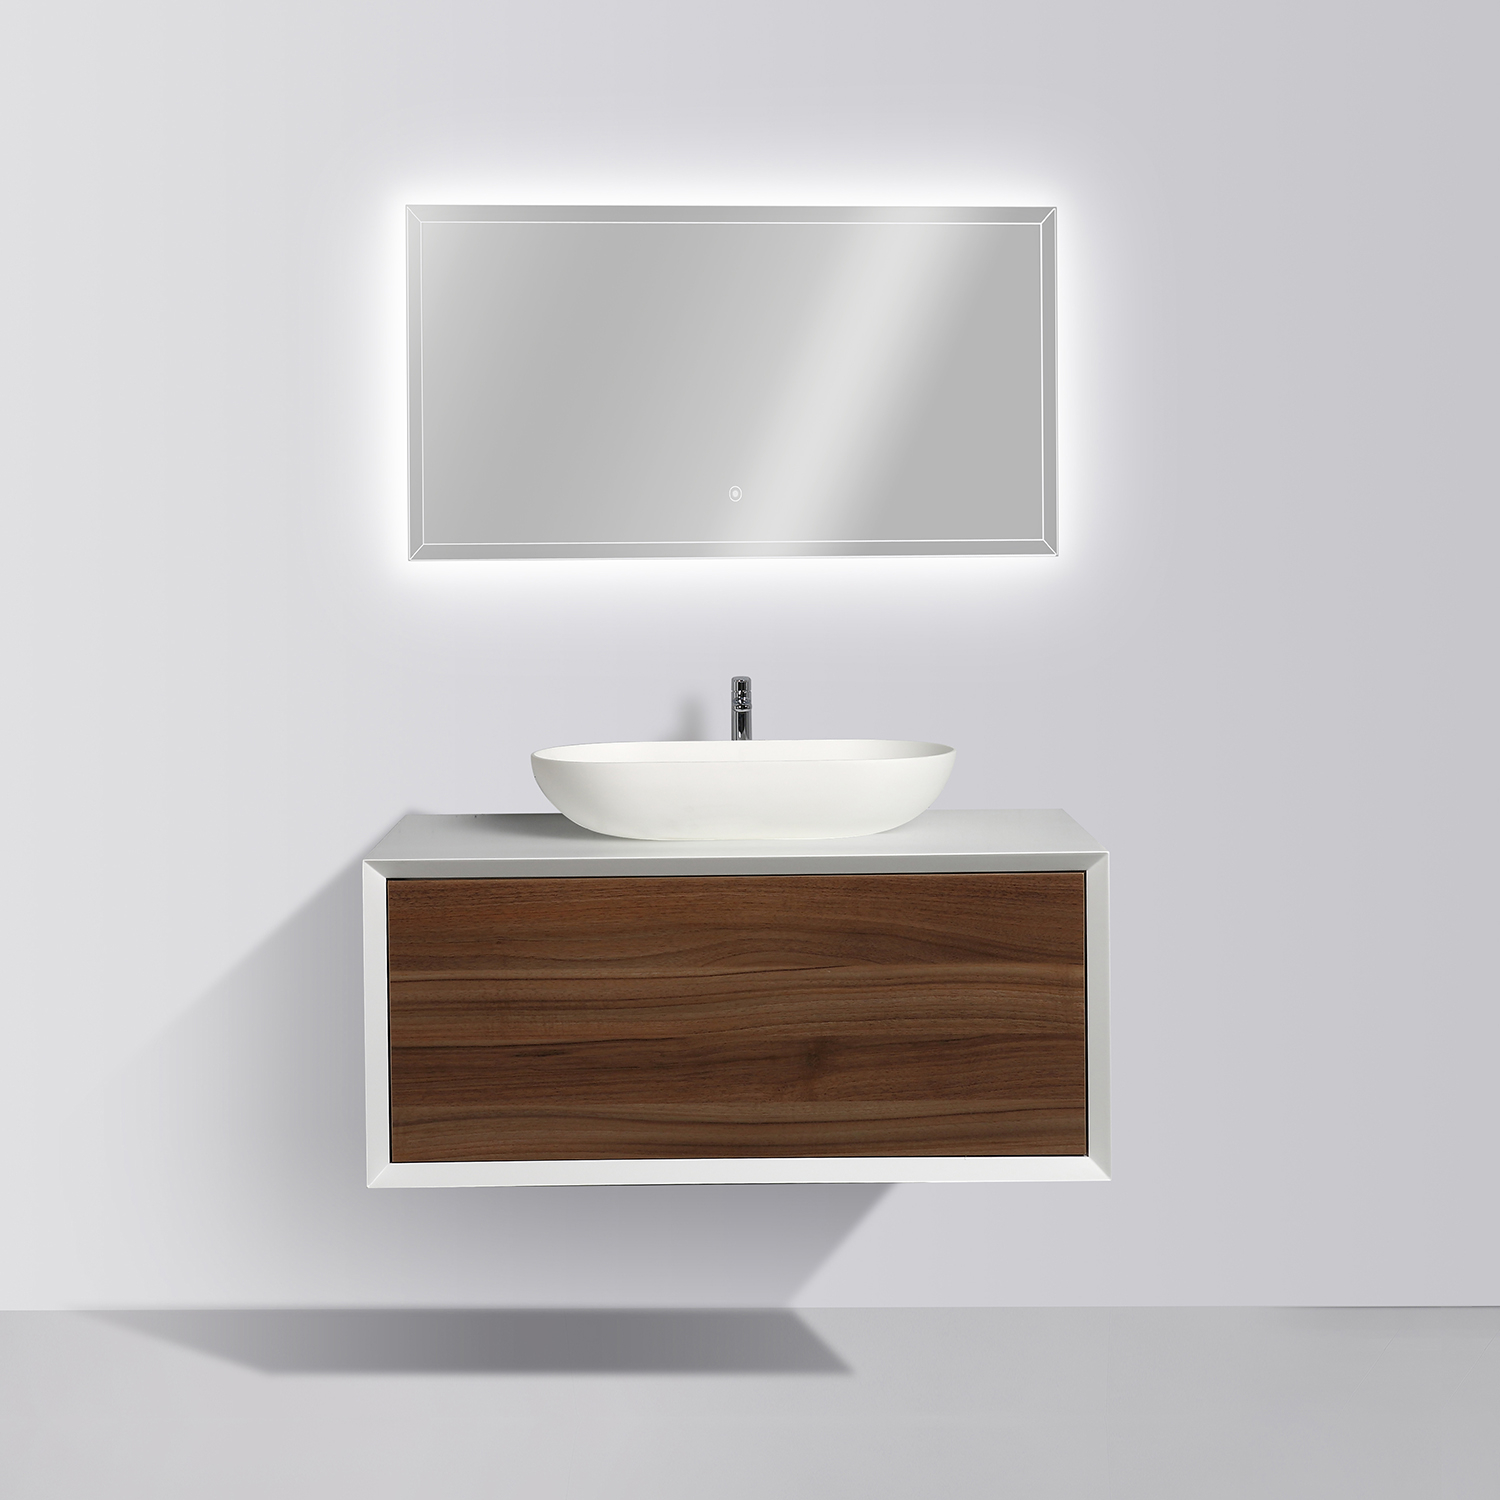 Wall Mounted Bathroom Furniture Set Fiona 900 Matte White Cabinet in proportions 1500 X 1500